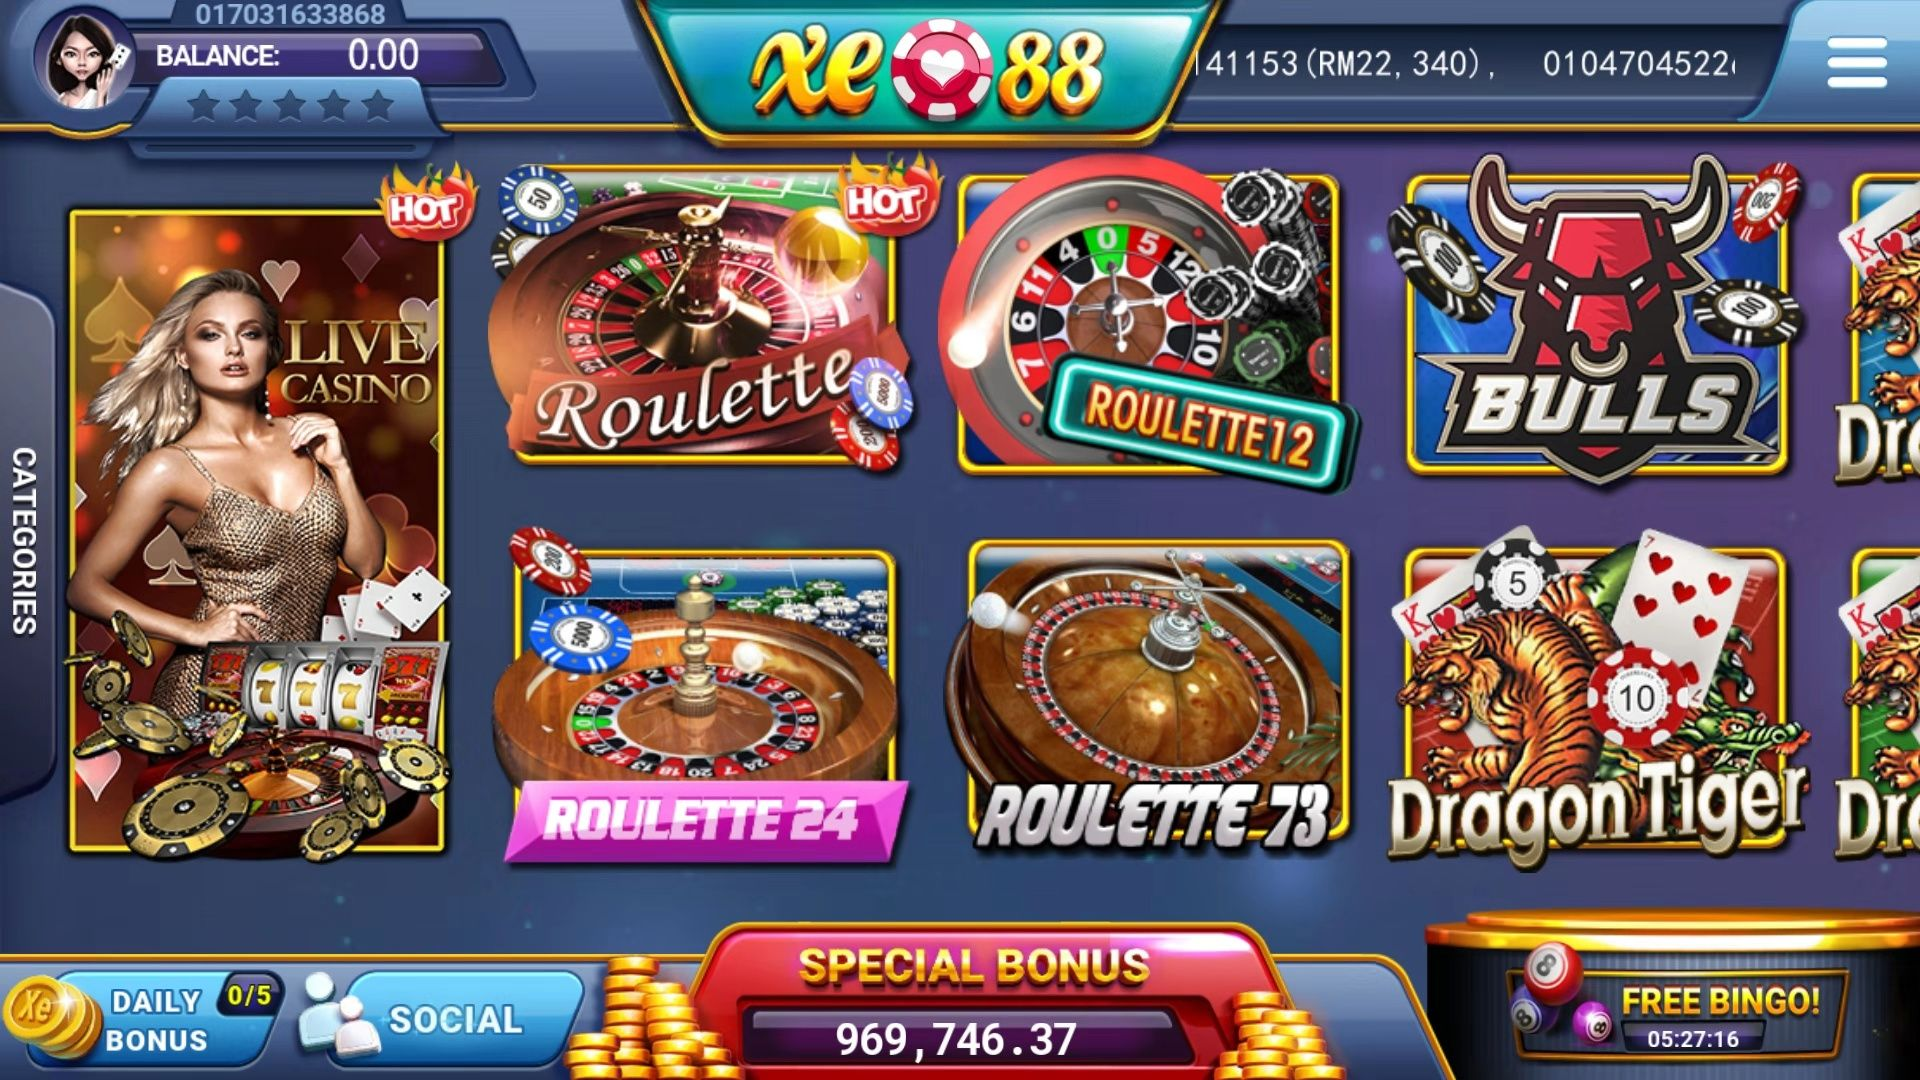 XE88 Client Download Android Apk iOS - XE88 Slot Games | OneGold88.com